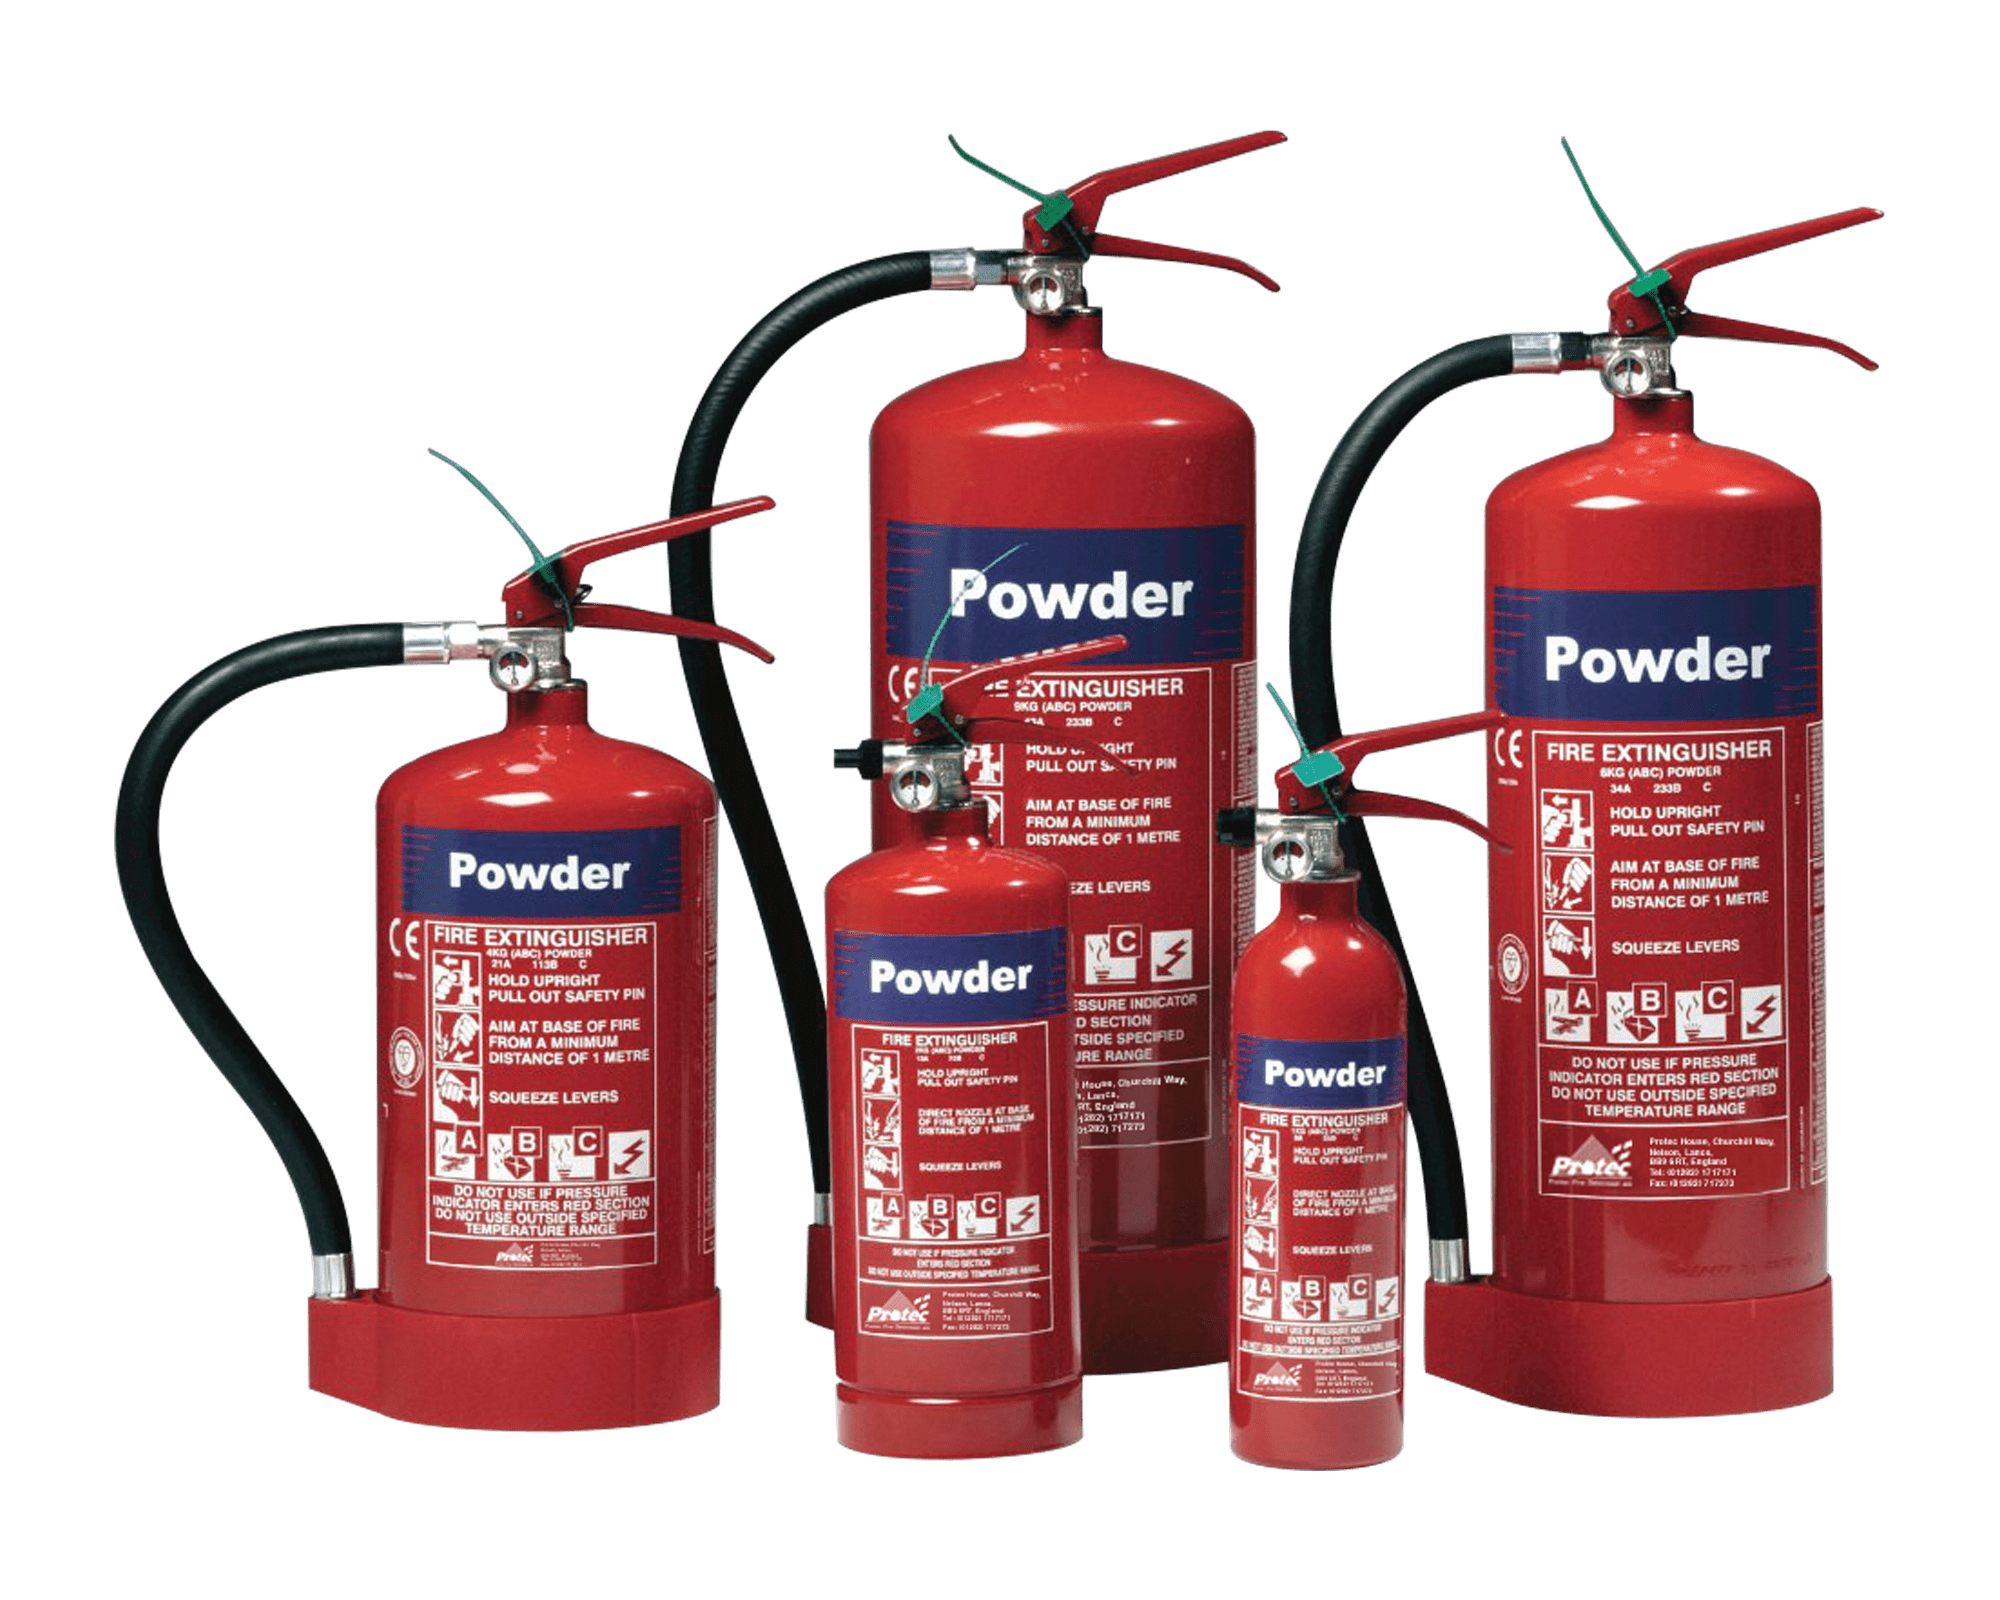 Powder Extinguisher